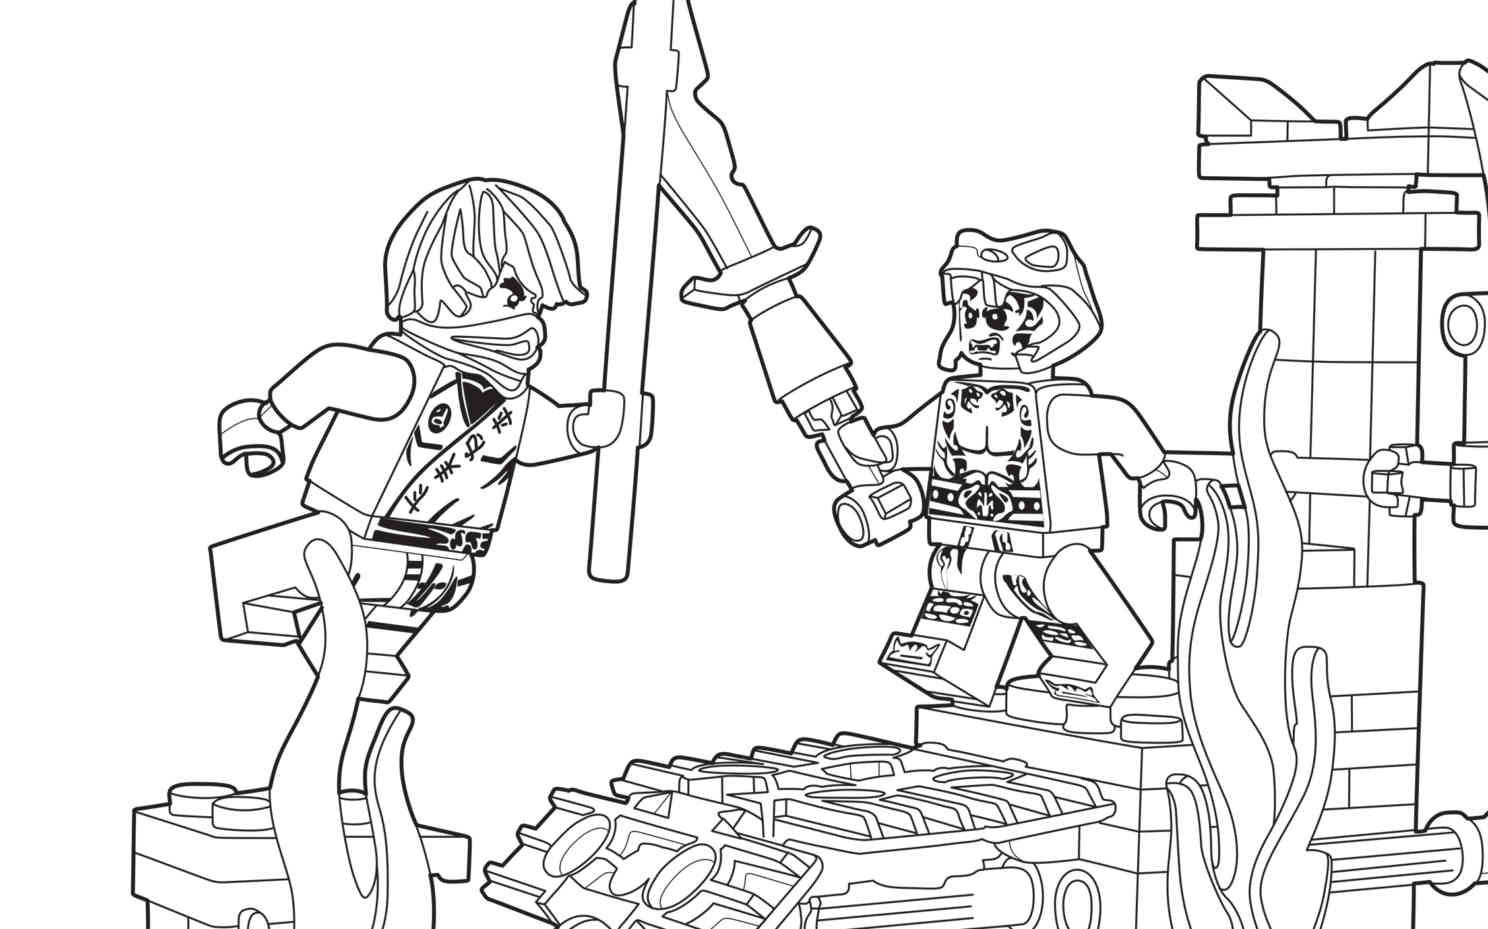 Coloring pages ninjago - Lego Ninjago 70753 Coloring Sheet